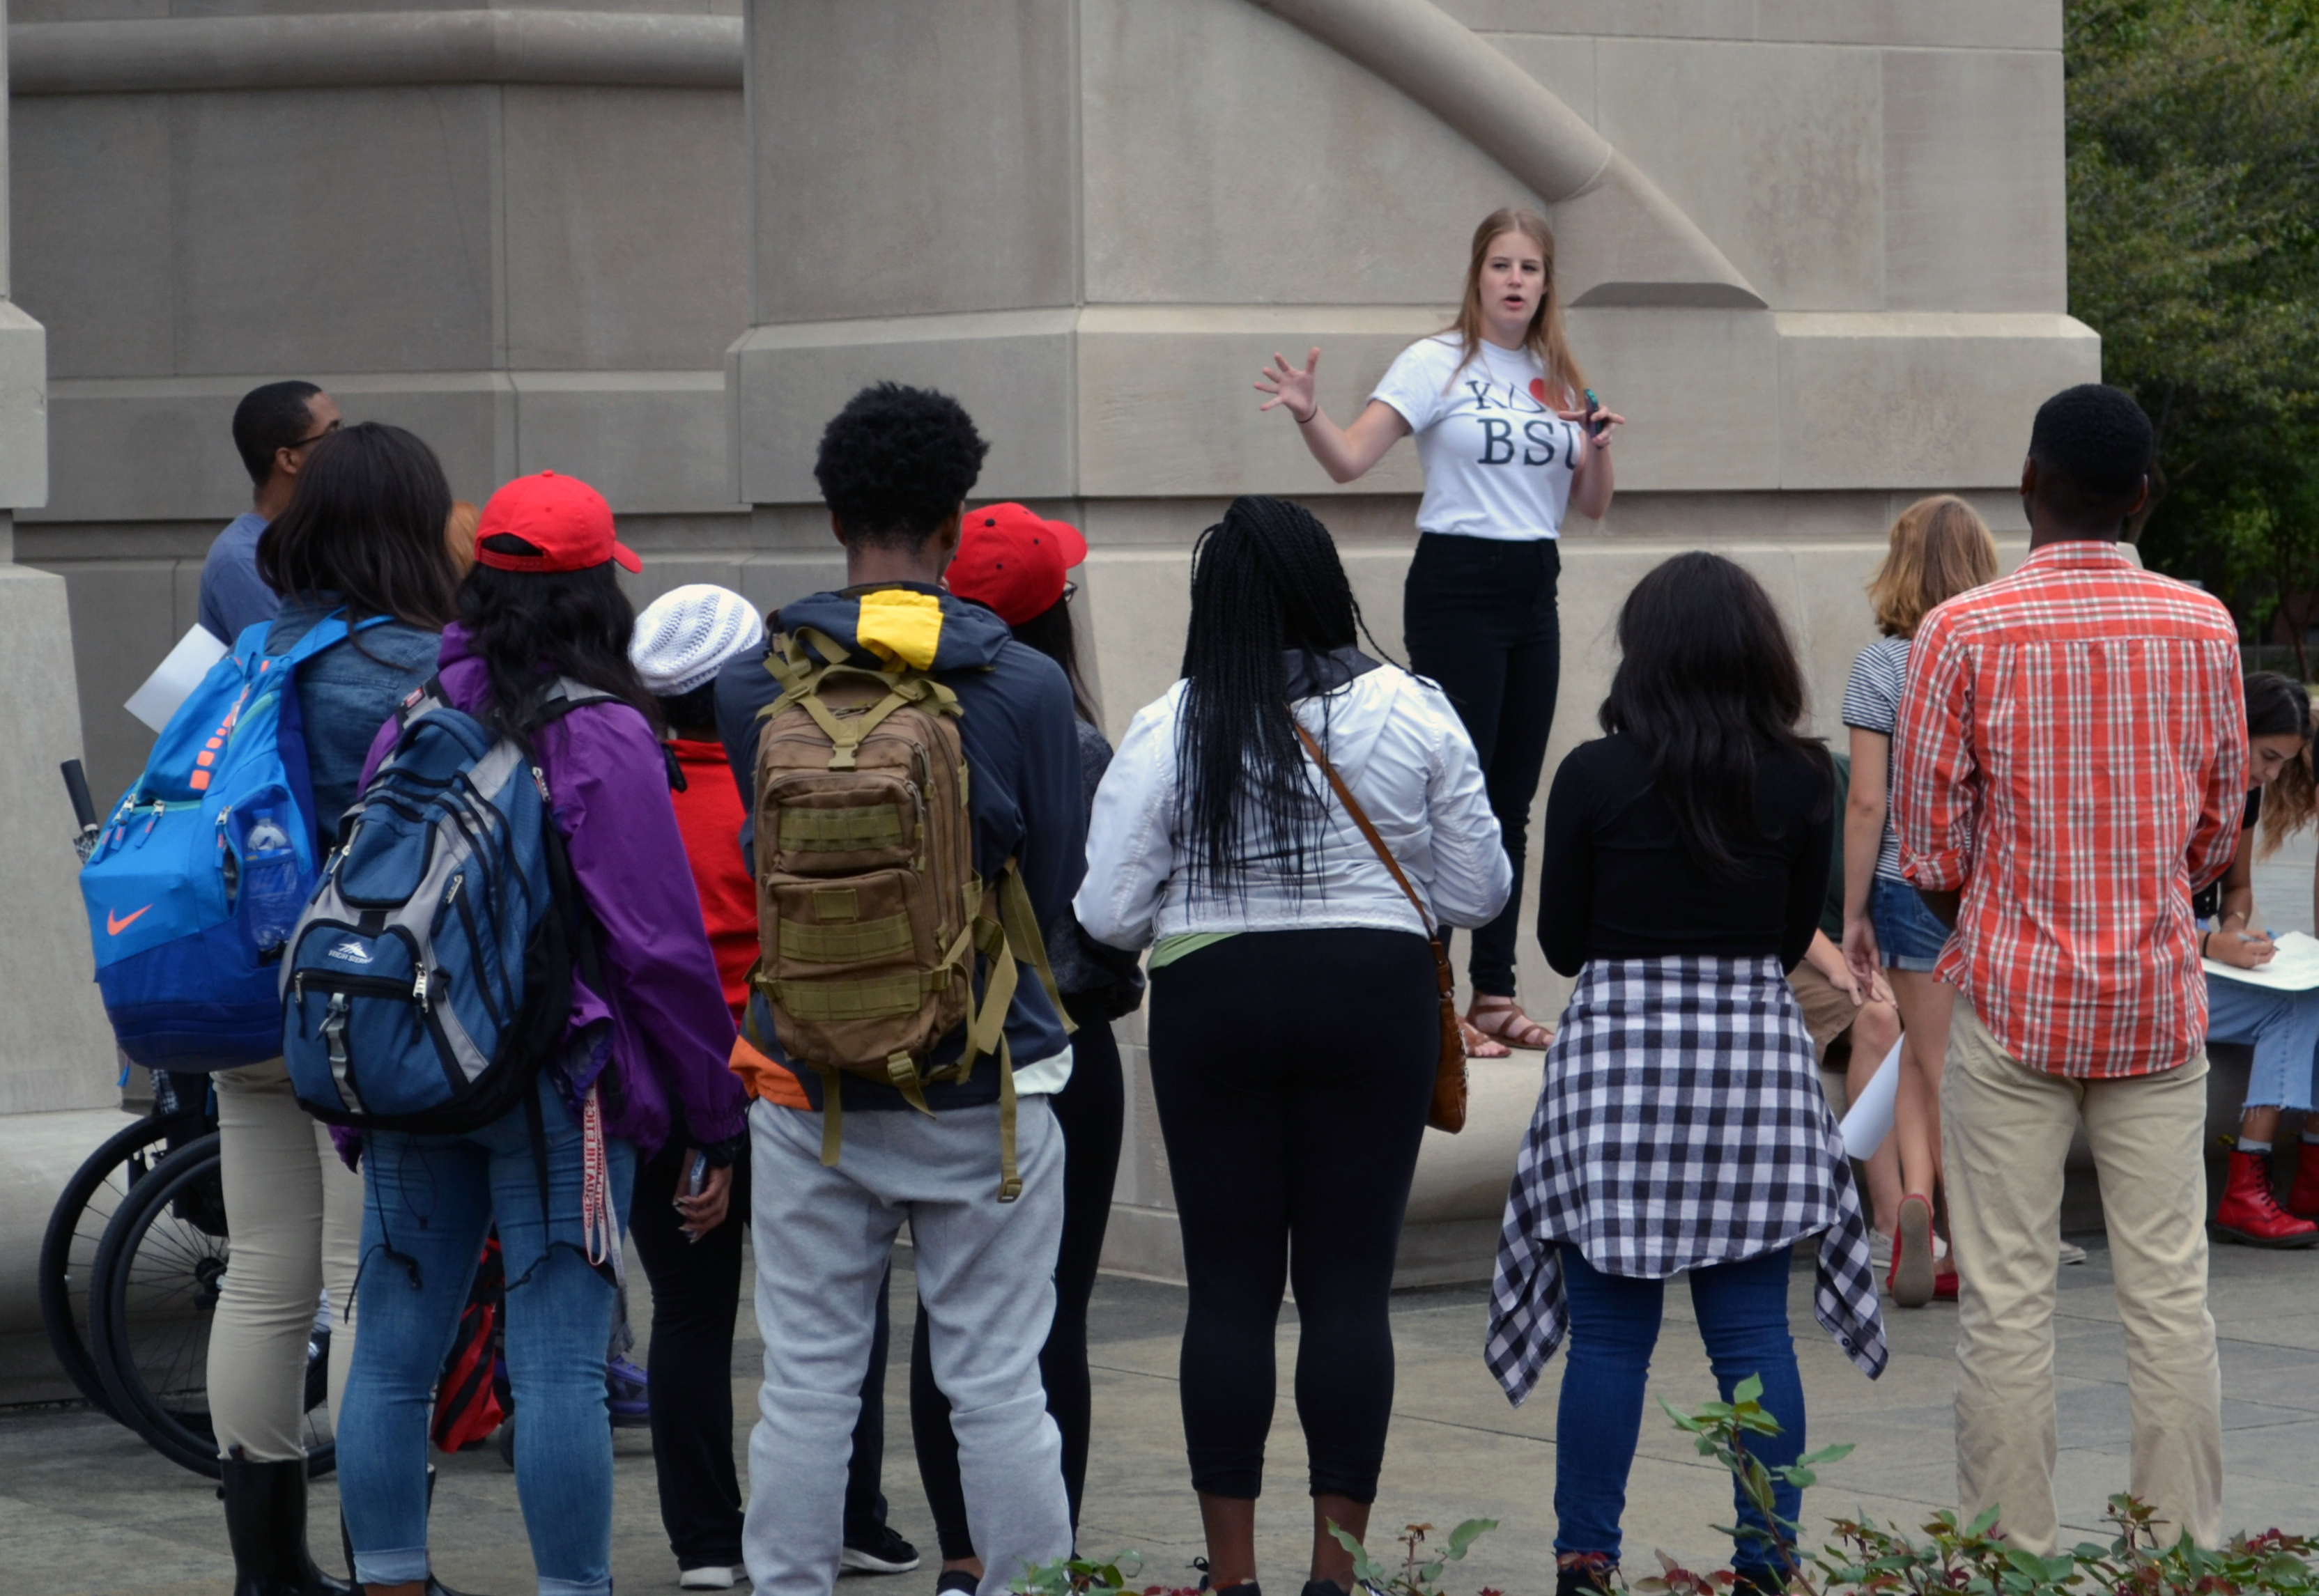 Mary Pat Stemnock, Ball State Democrat, led a protest on campus Wednesday, Sept. 9.